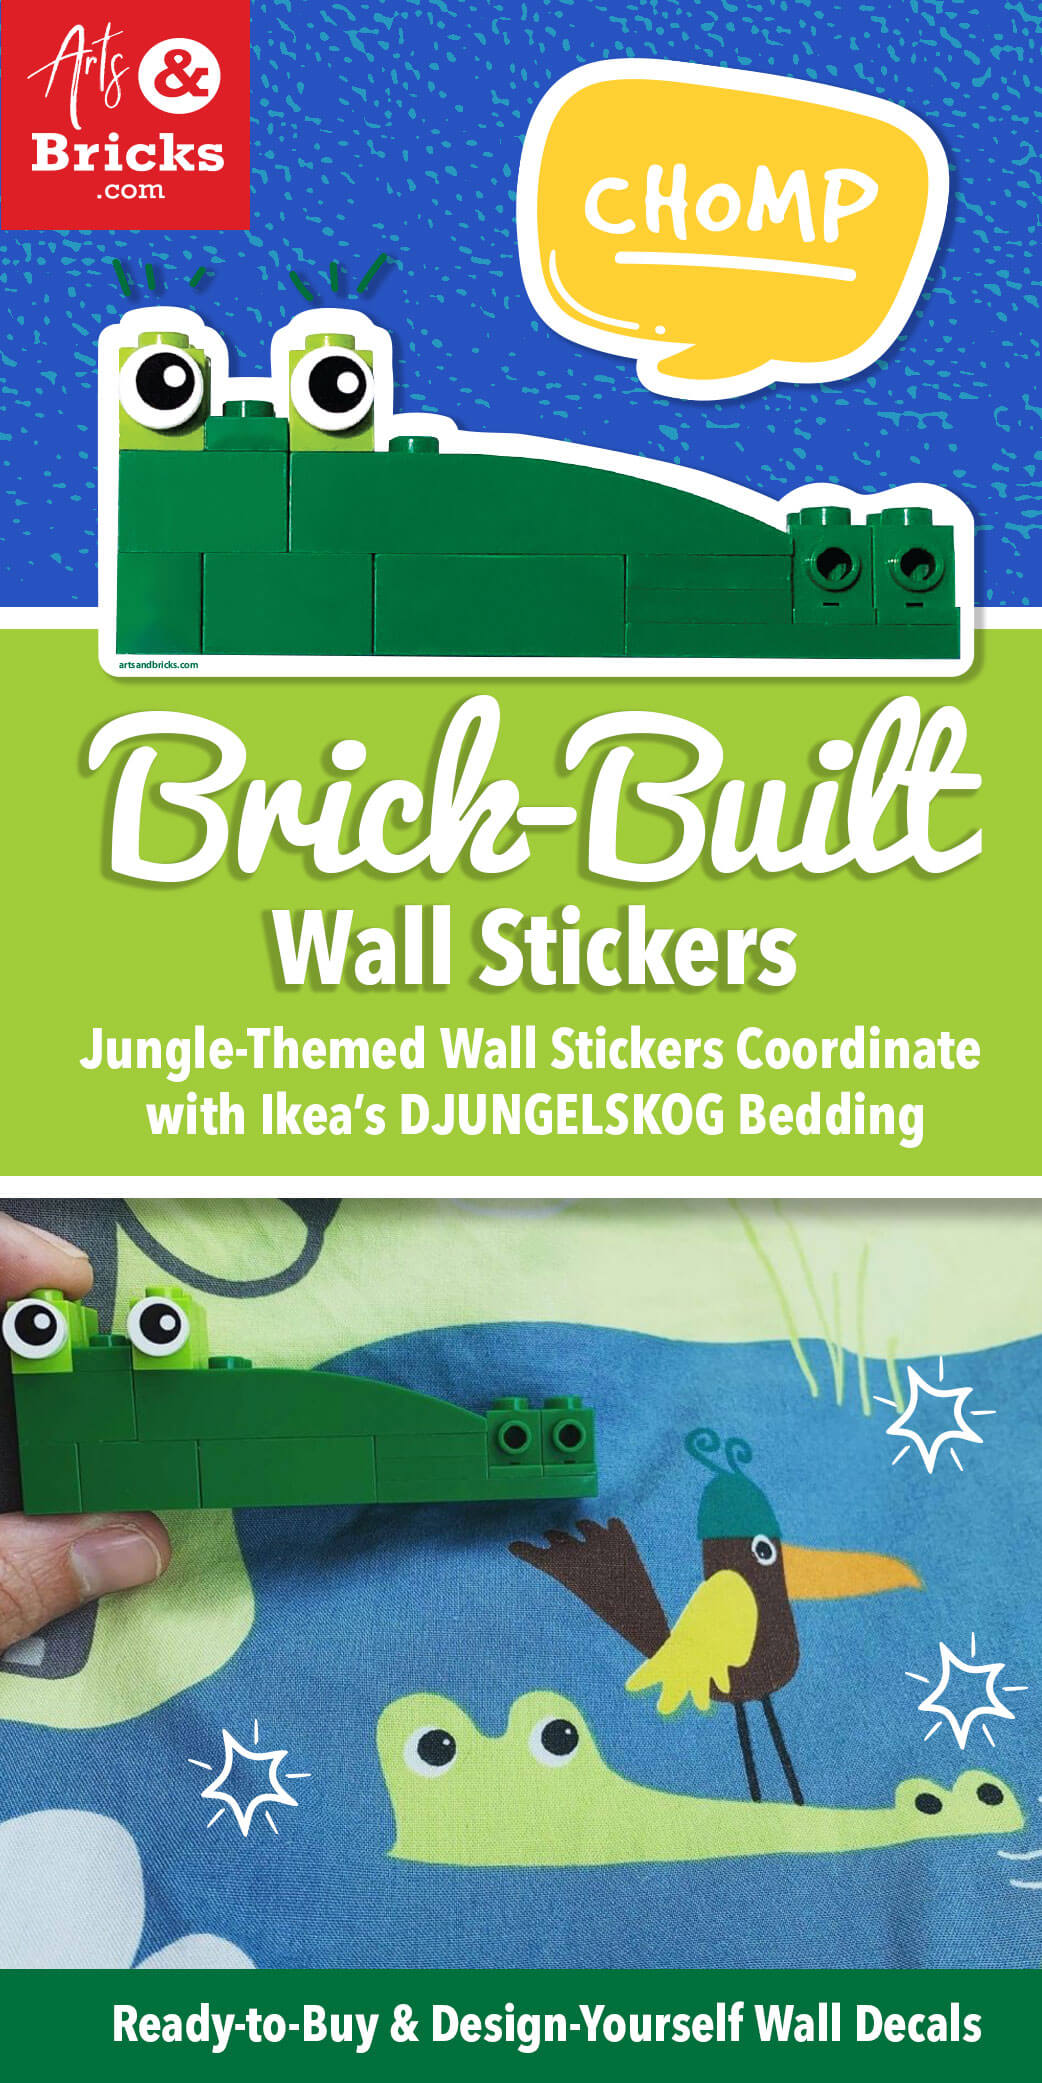 Brick-Built Wall Stickers that match Ikea Djungelskog Bedding Jungle